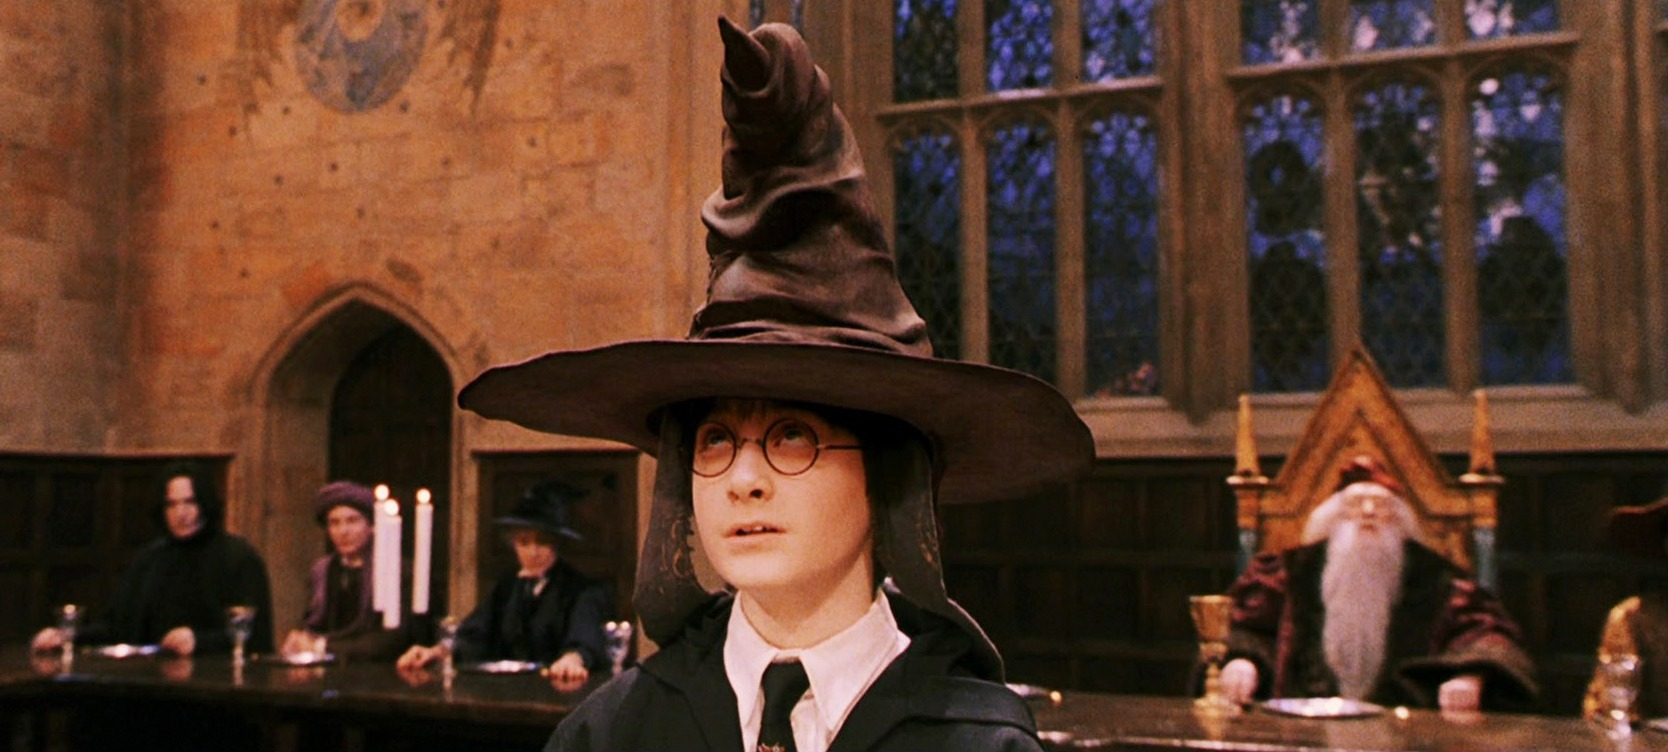 """This """"Harry Potter"""" fan theory suggests everything we know about the sorting hat is a LIE"""